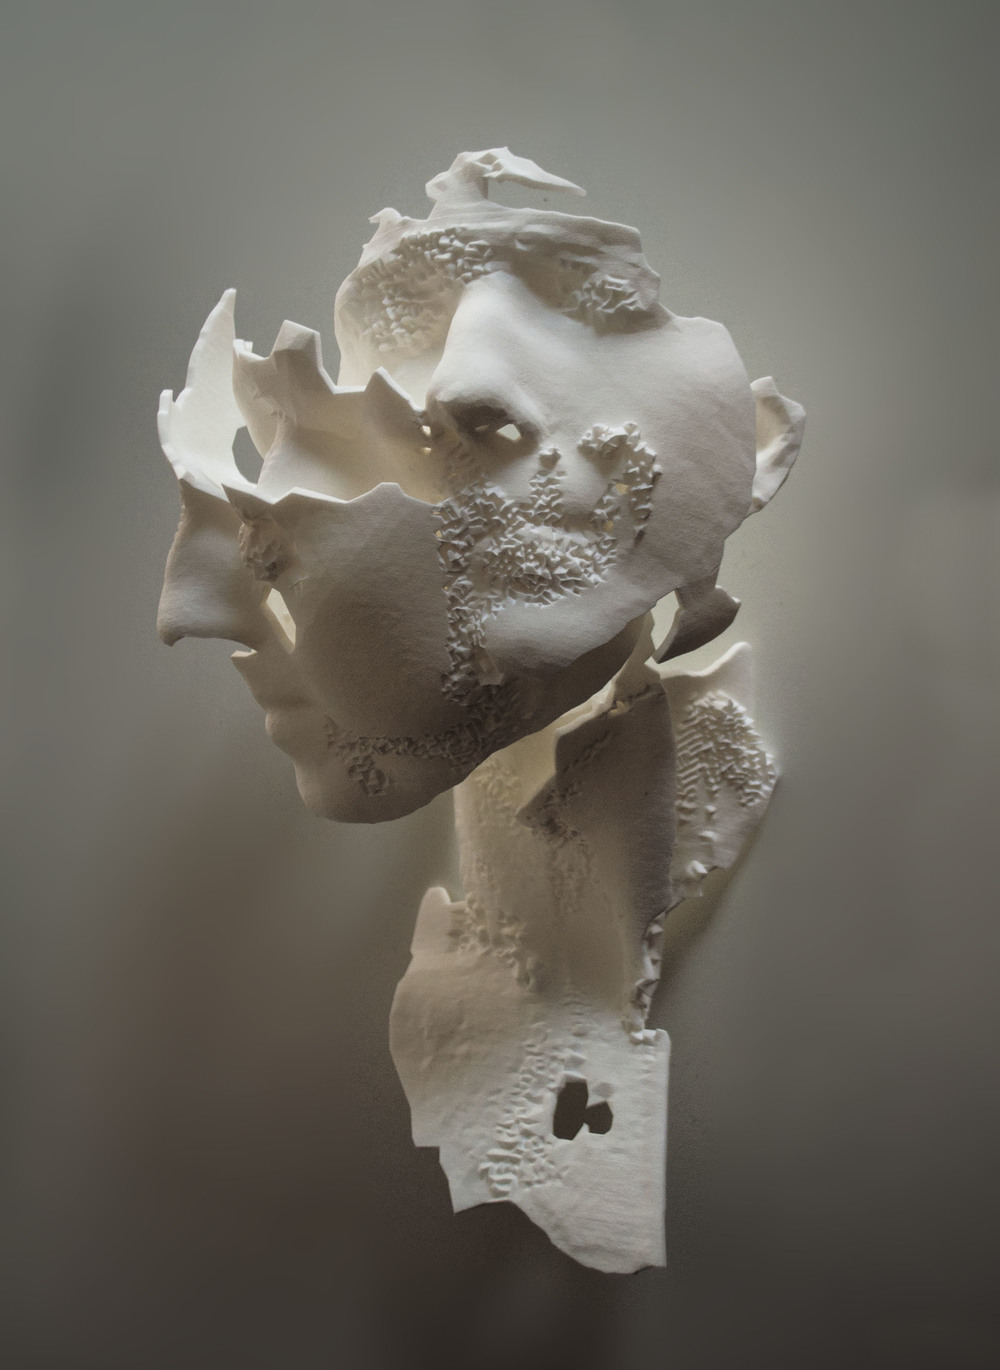 Triple Portrait of E, 2013, 3d print (laser sintered nylon) from 3d laser scan, life size